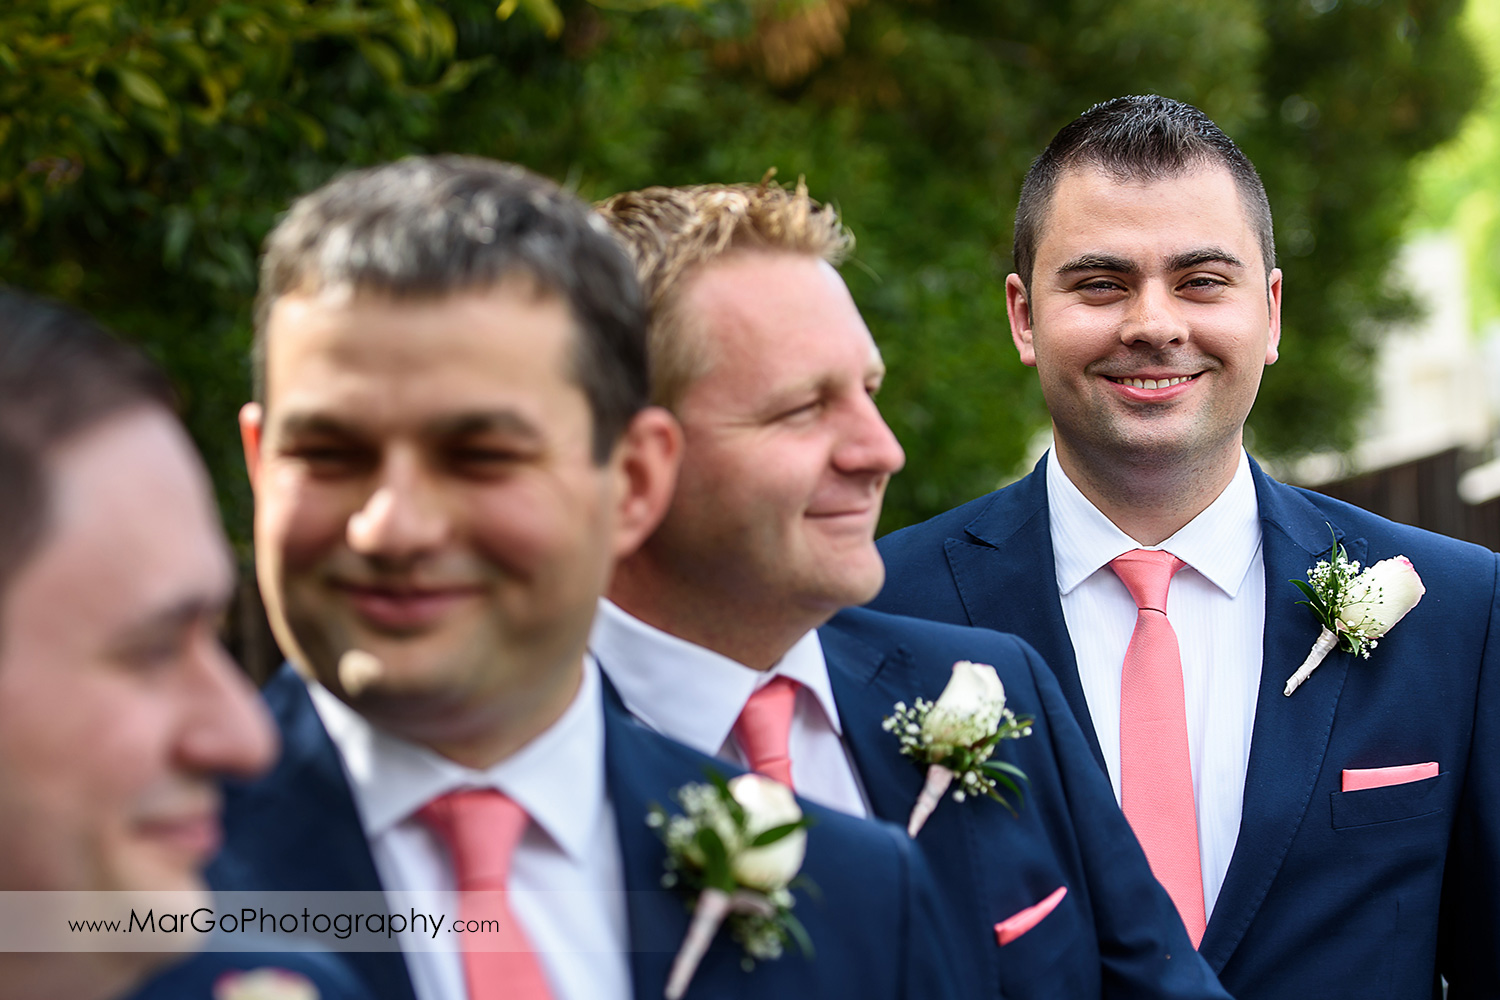 close-up portrait of groom and groomsmen in blue suit and pink tie at Saratoga Foothill Club